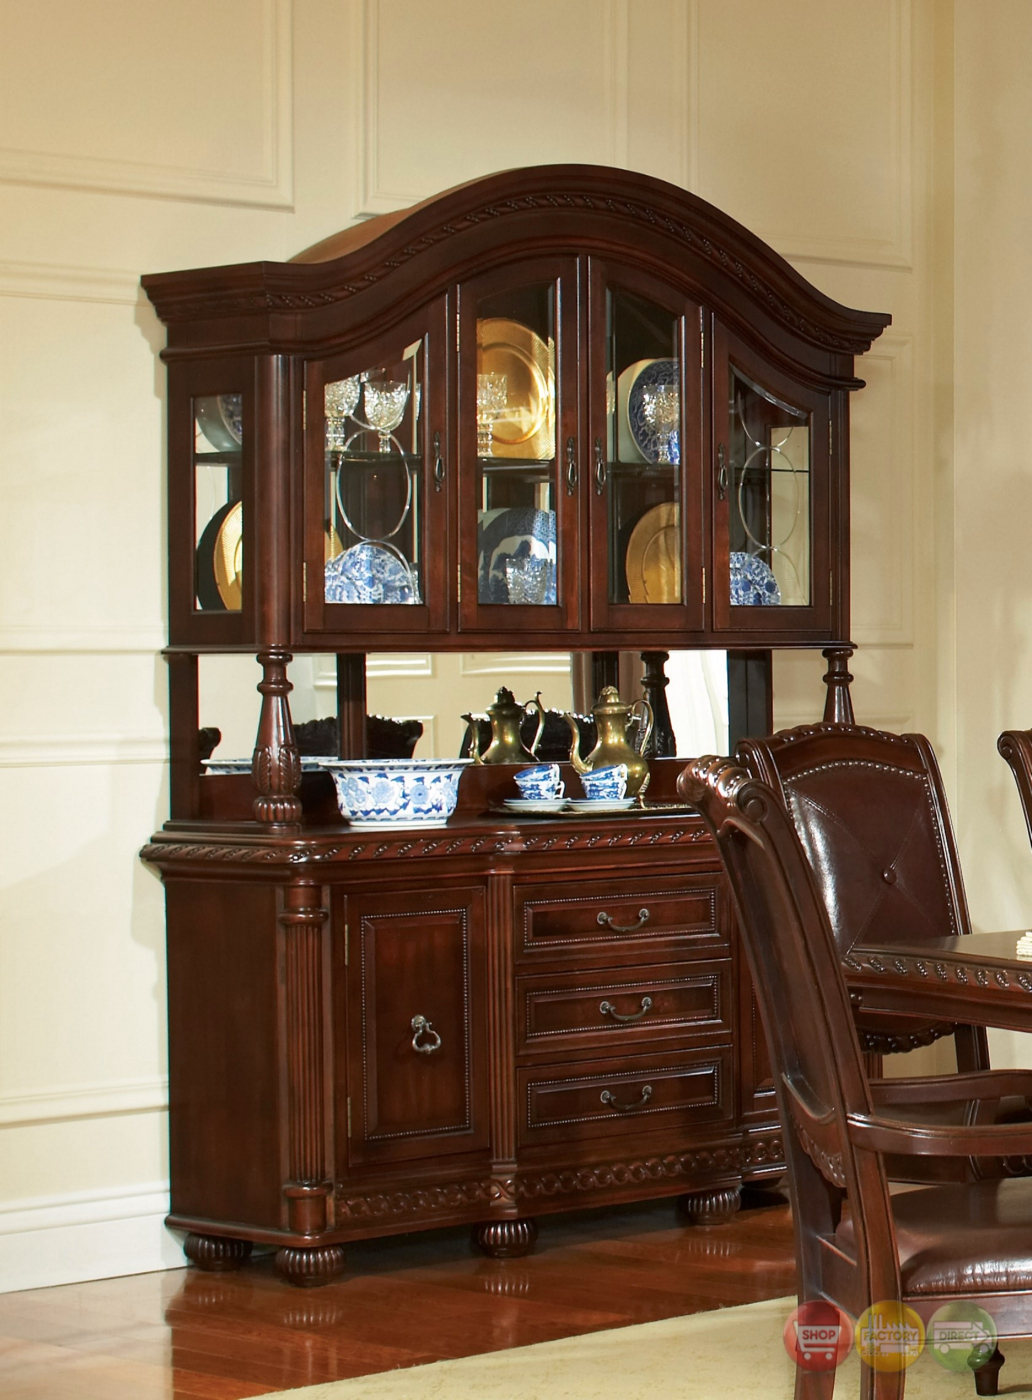 Antoinette Mahogany China Cabinet With Distressed Cherry. Cabinets Design For Kitchen. Geelong Designer Kitchens. Kitchen Island Design Tips. Design Your Kitchen Ikea. Kitchen And Bath Designer. Kitchen Hood Designs. Commercial Kitchen Designer. Designer Kitchens Magazine